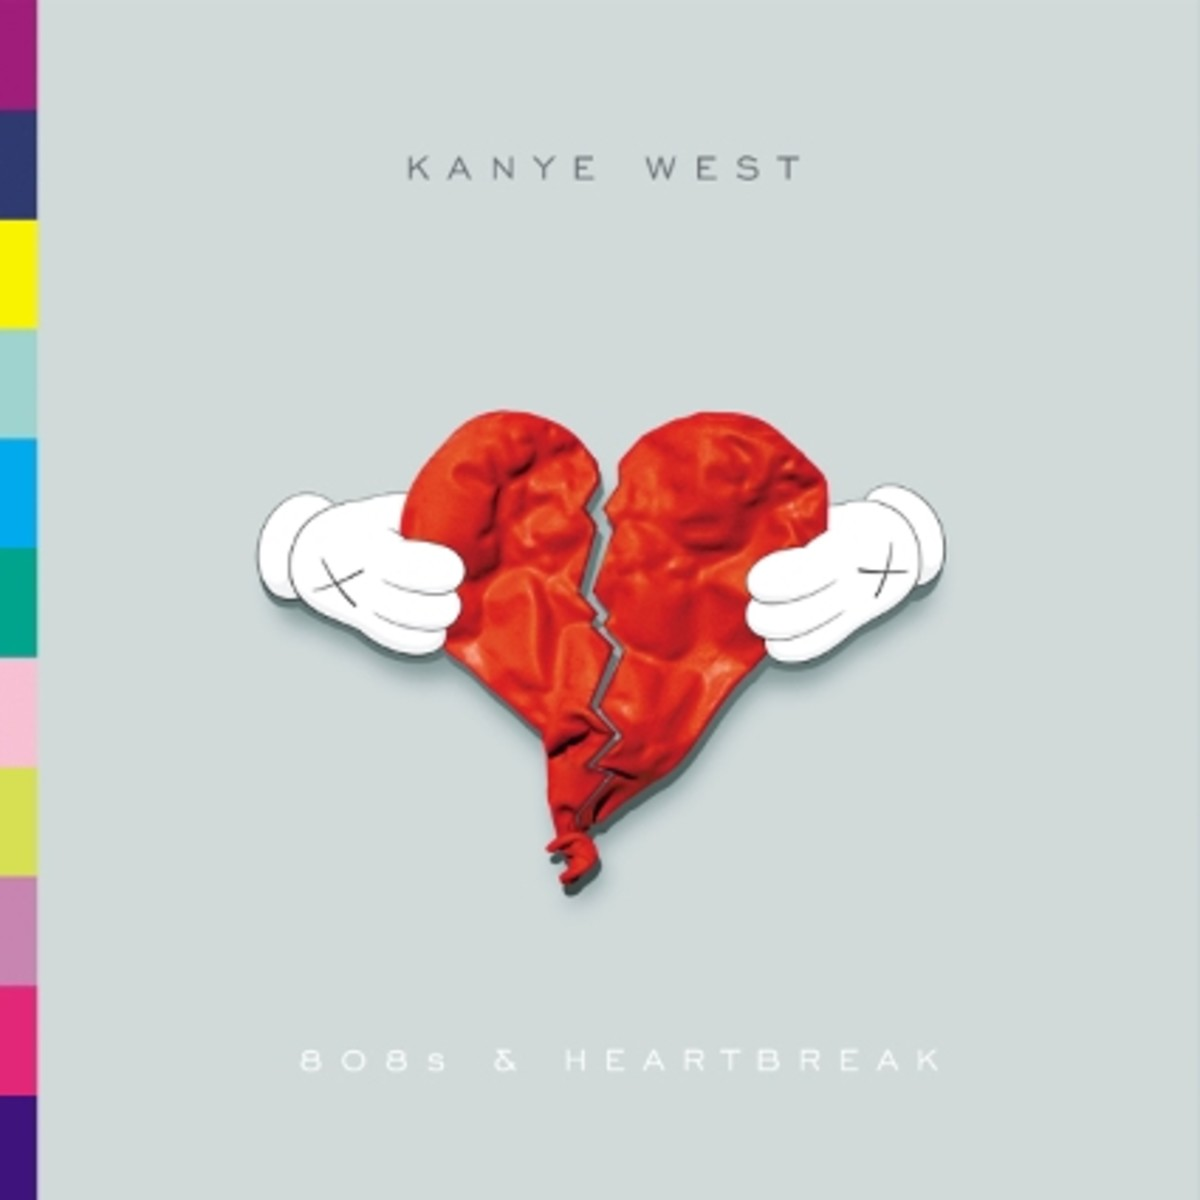 Kanye West x KAWS - 808's and Heartbreak Cover - 0